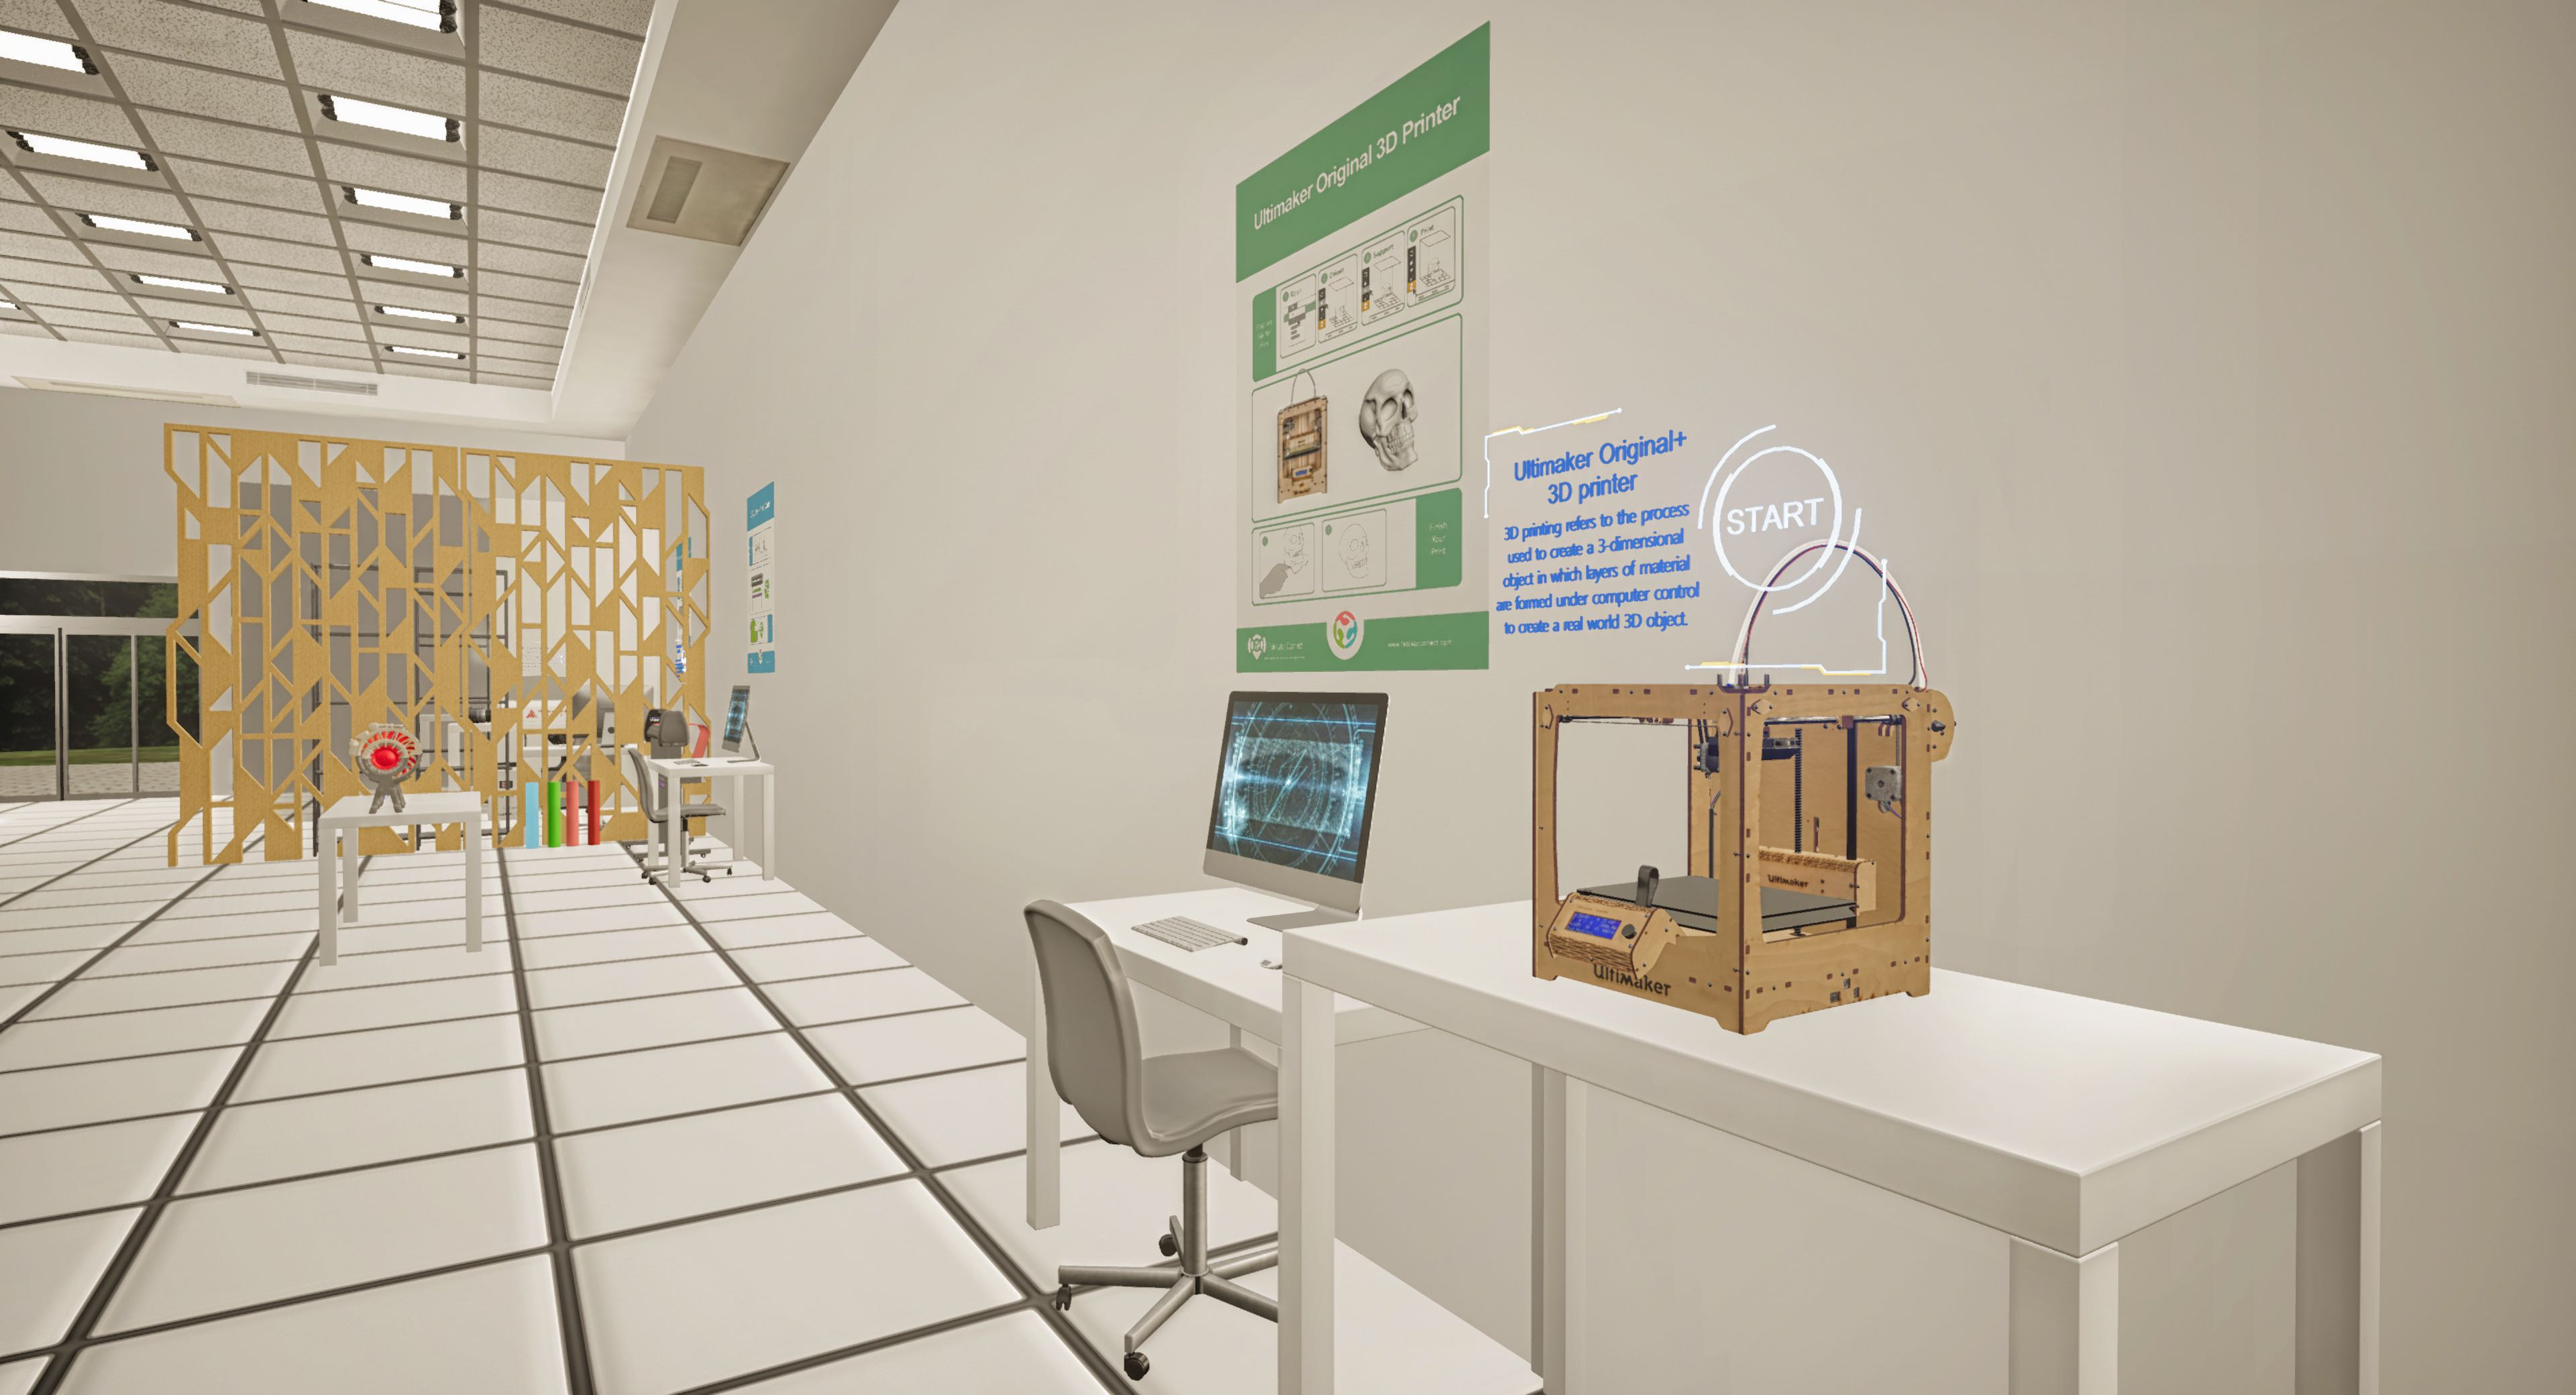 School Fab Lab VR App - 'Test Out State of the Art Equipment'